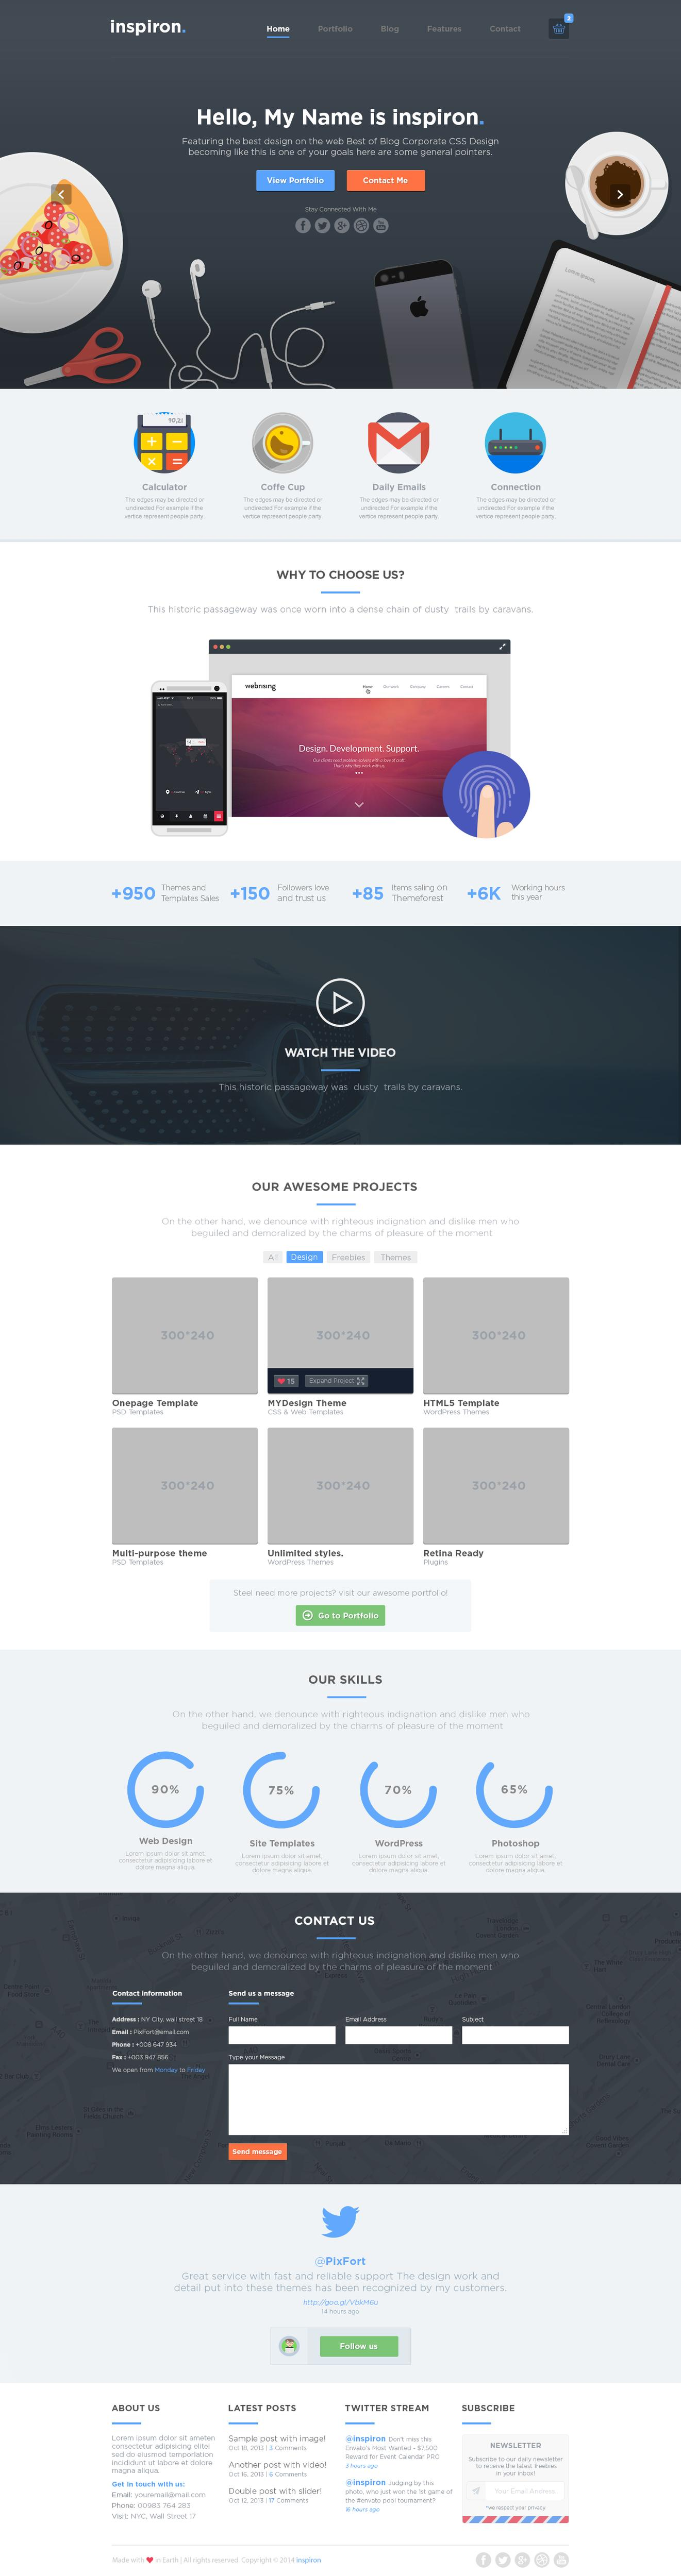 Premium High Quality Homepage Web Design / Redesign by PixFort - 57799